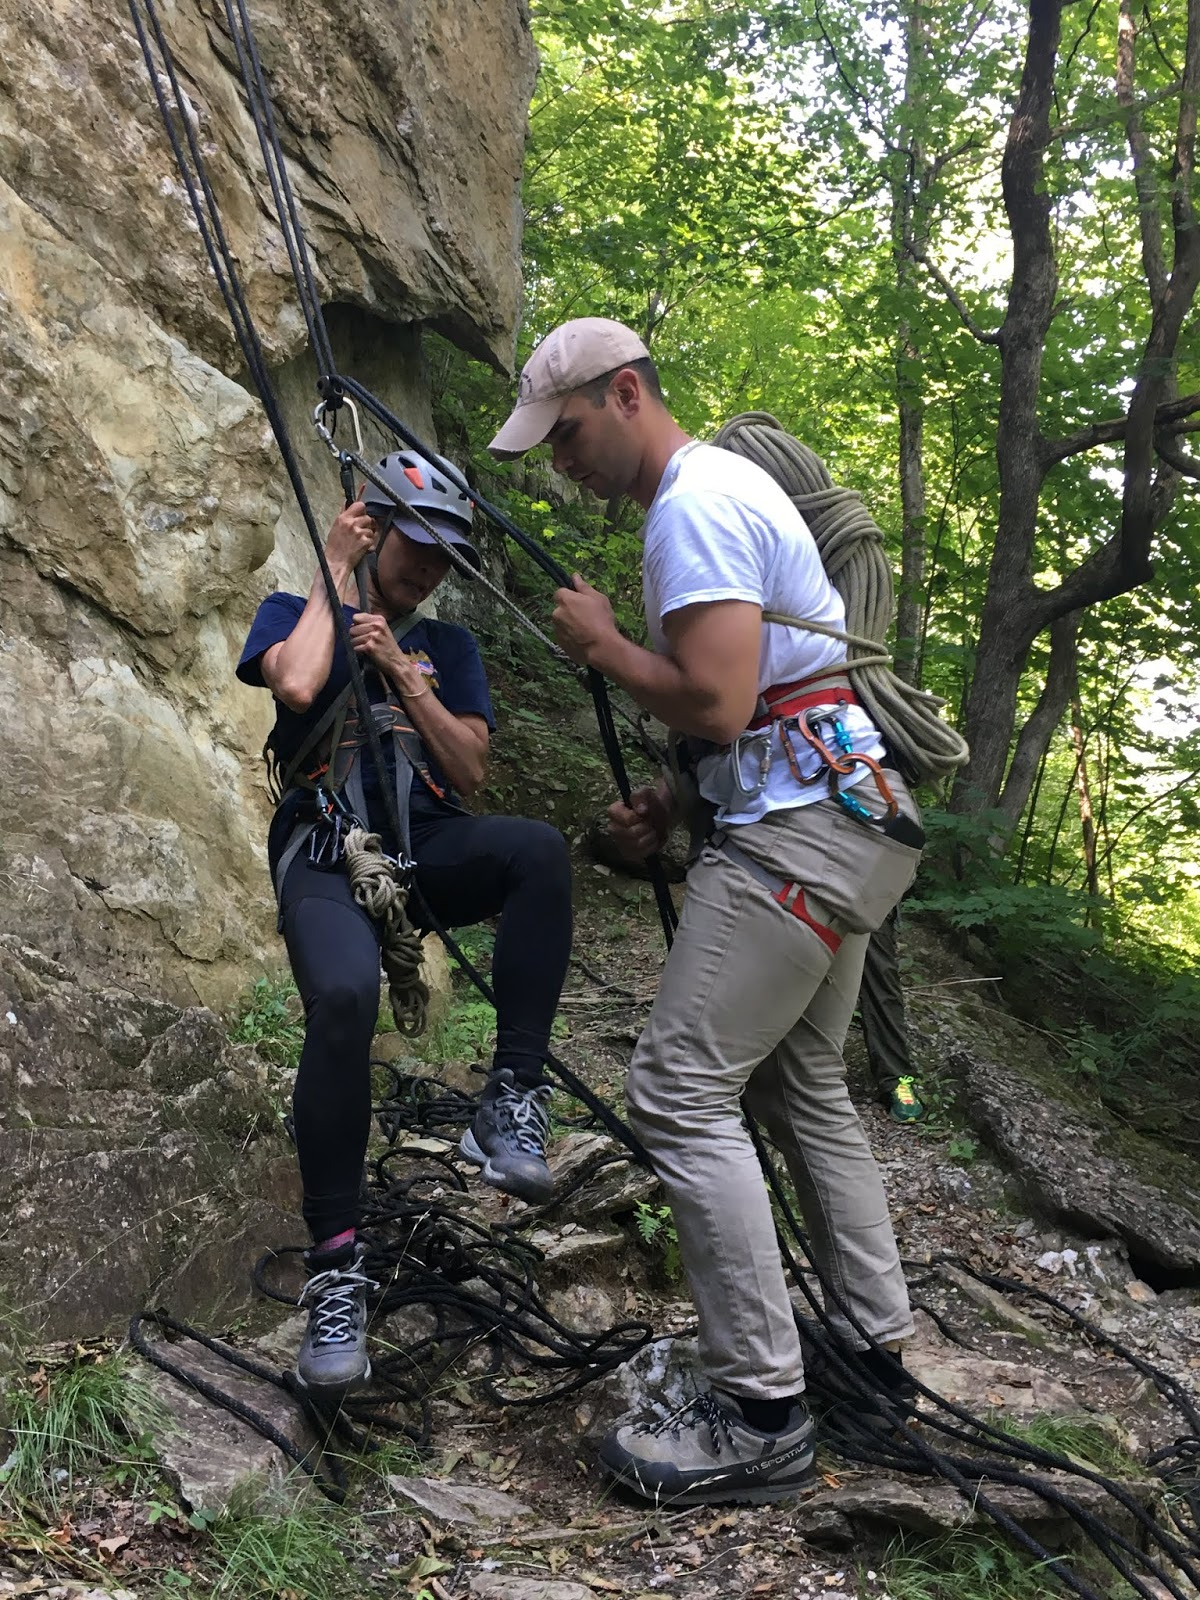 A male instructor in climbing gear unties their line from a female student who is just touching the ground following them rappelling down a cliffside.